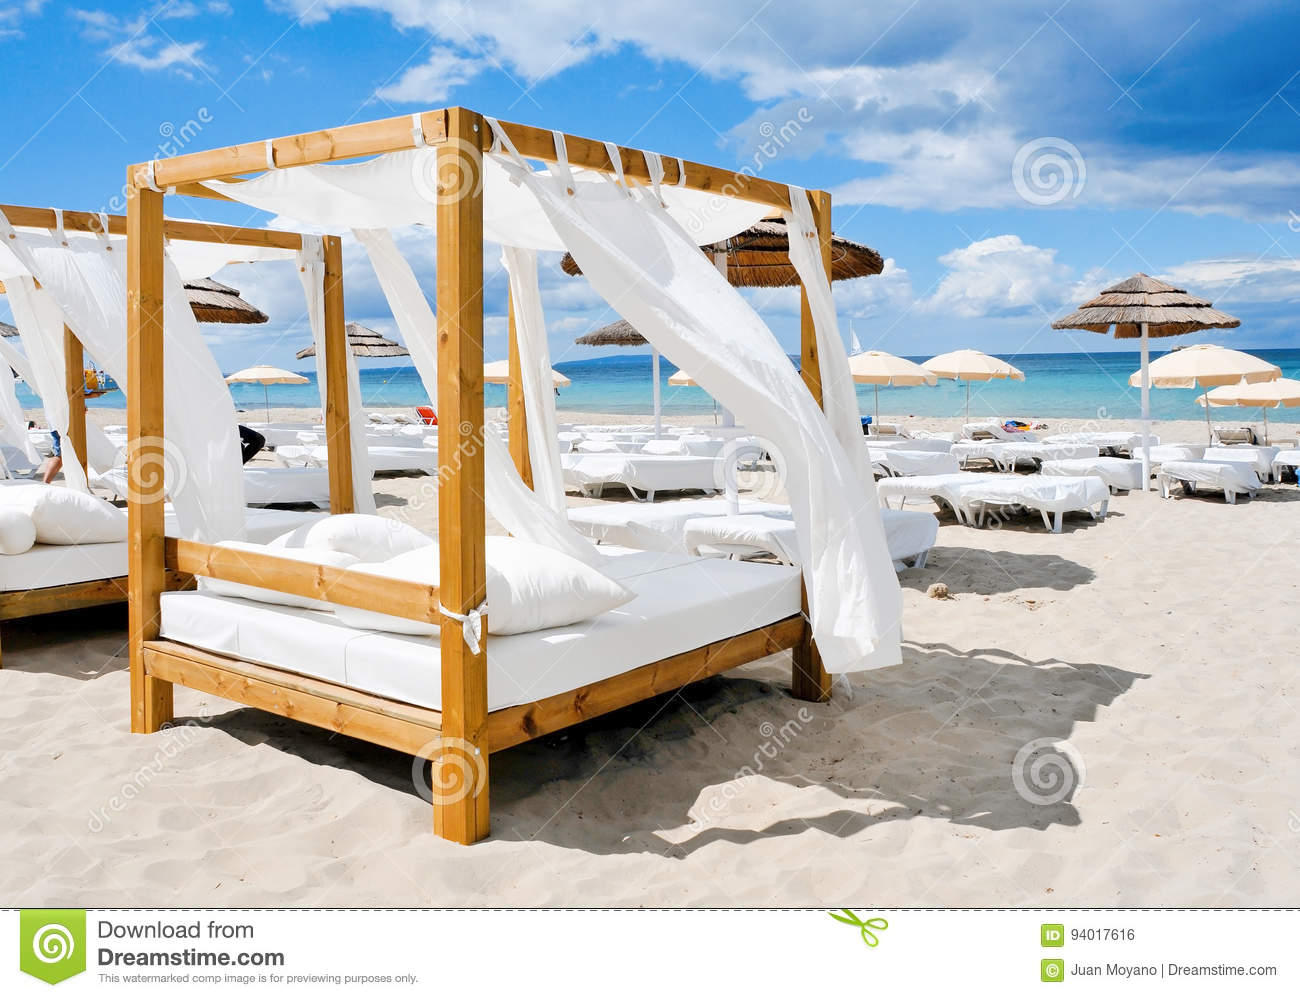 betten in einem strand schlagen in ibiza spanien mit einer keule stockfoto bild von sommer. Black Bedroom Furniture Sets. Home Design Ideas